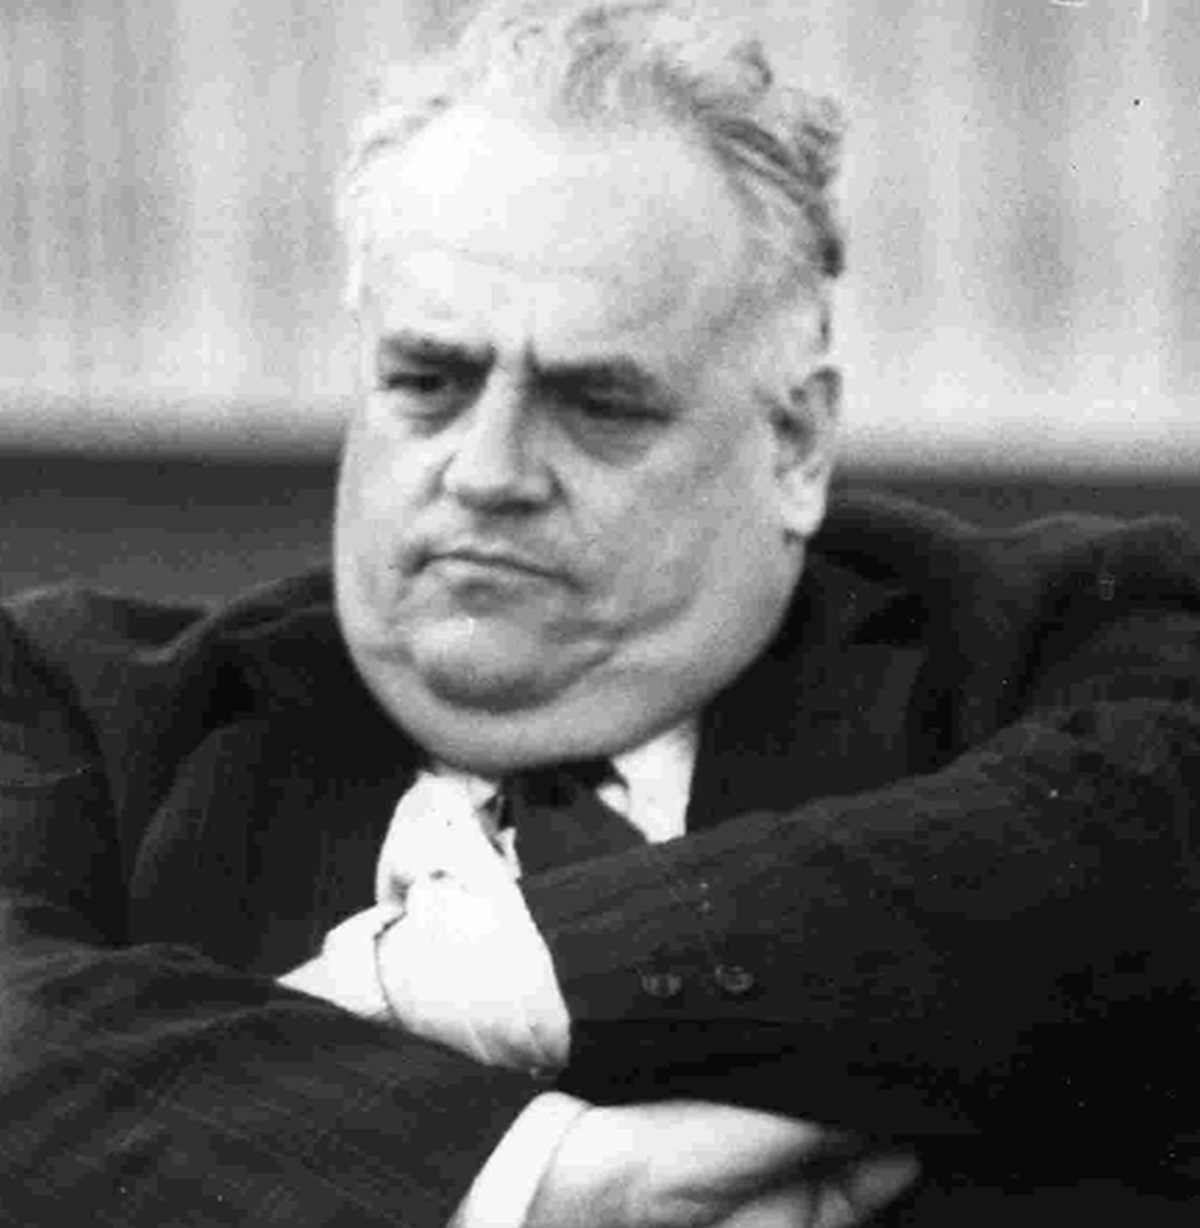 Former council leaders shocked over Cyril Smith sex abuse allegations